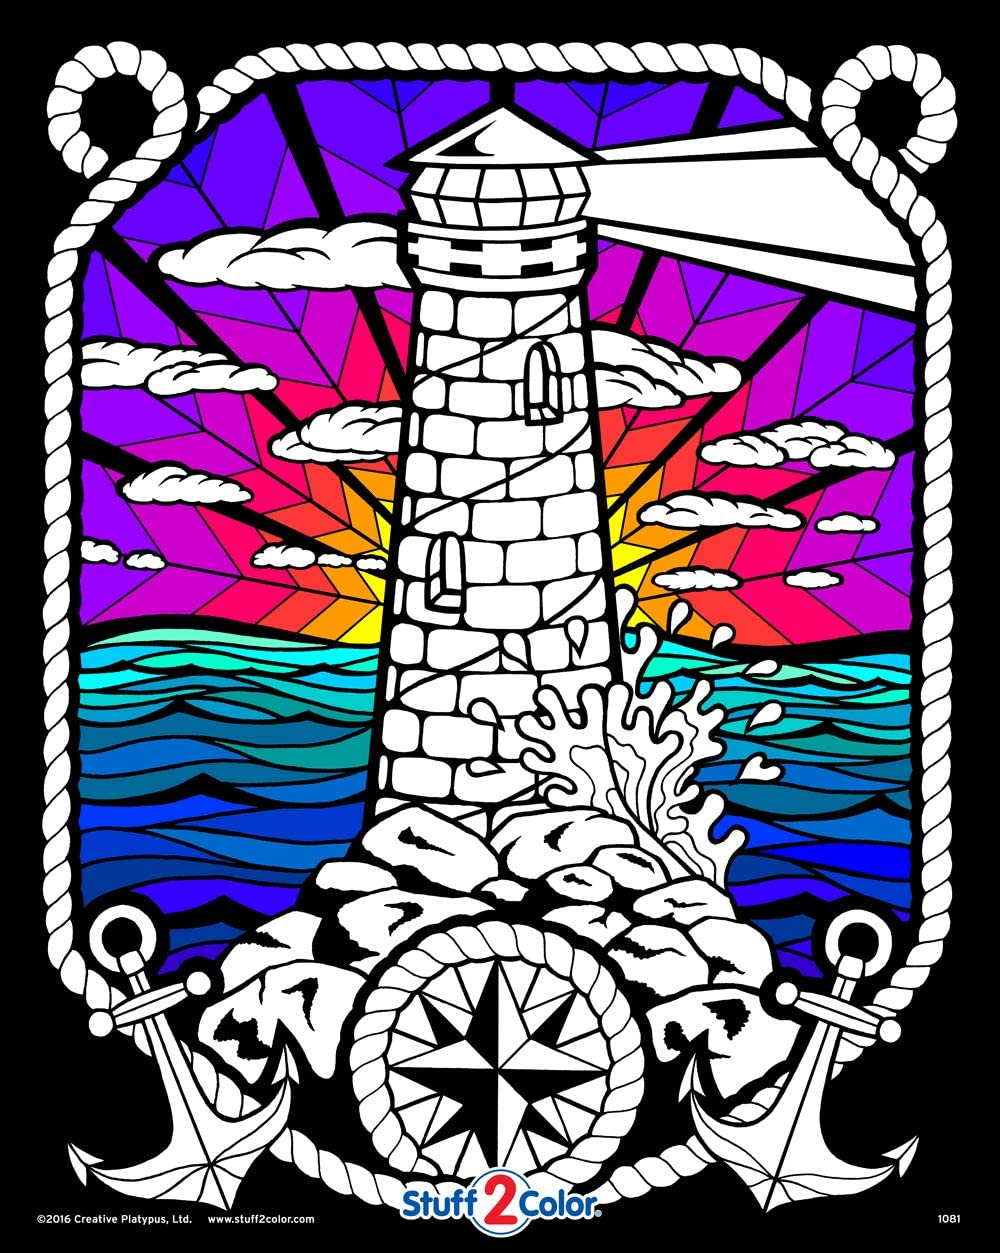 Lighthouse Sacramento Mall - Fuzzy Velvet Detailed Coloring High quality Poster 16x20